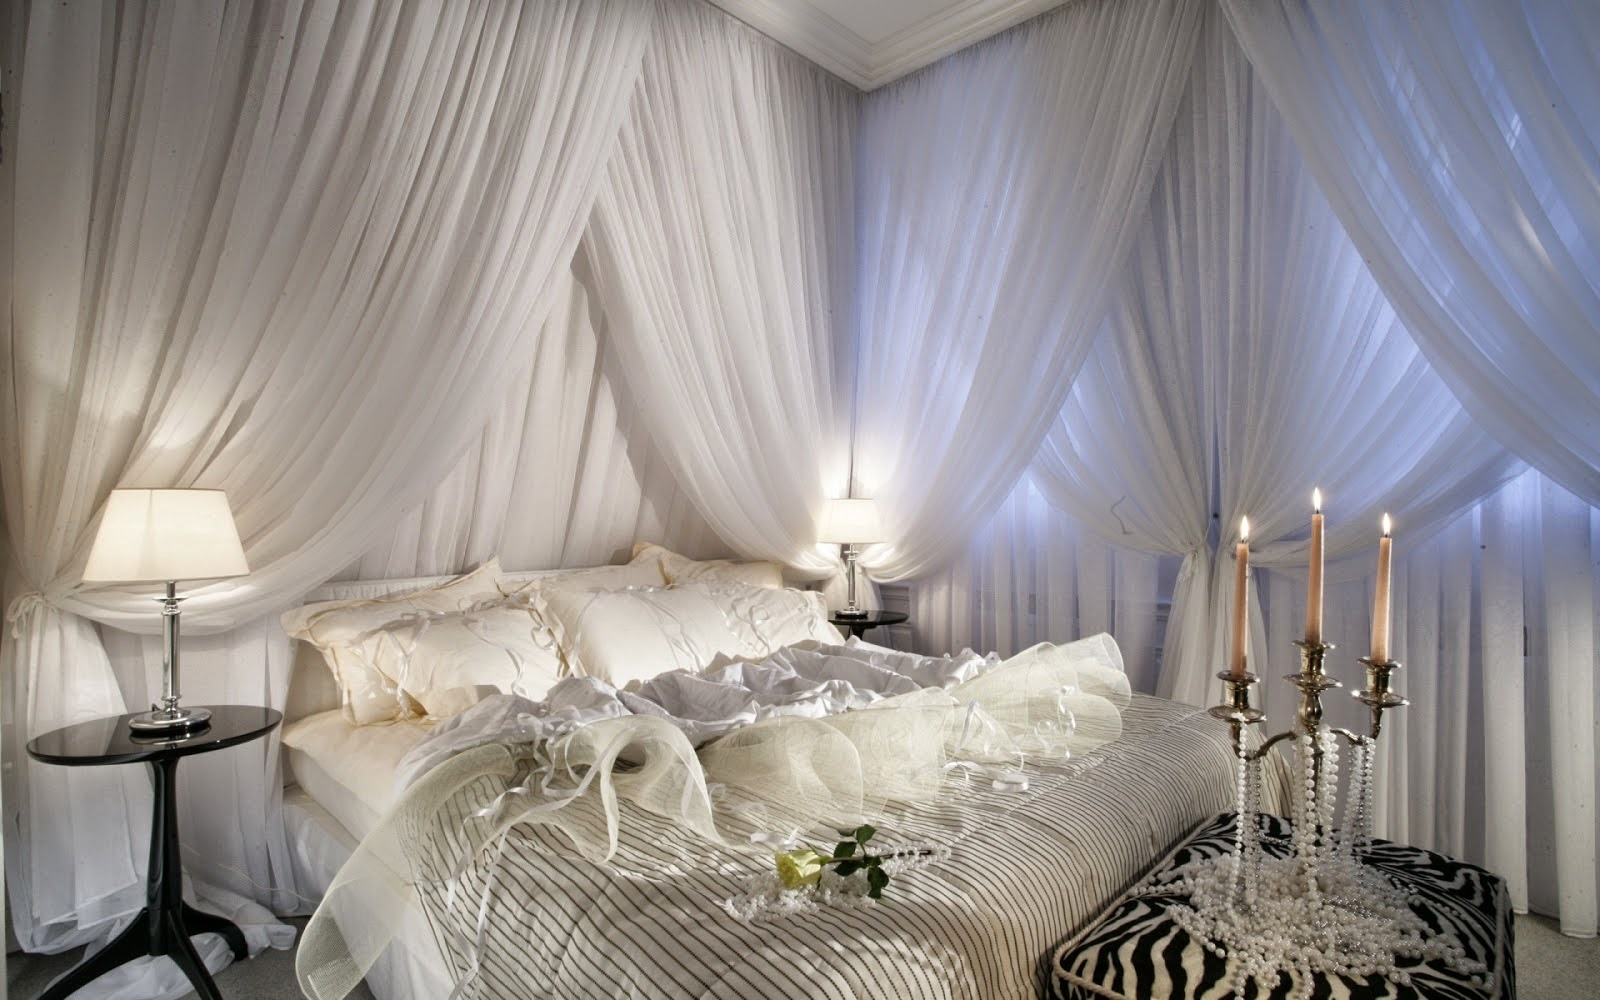 D coration chambre parents for Decoration fenetre romantique